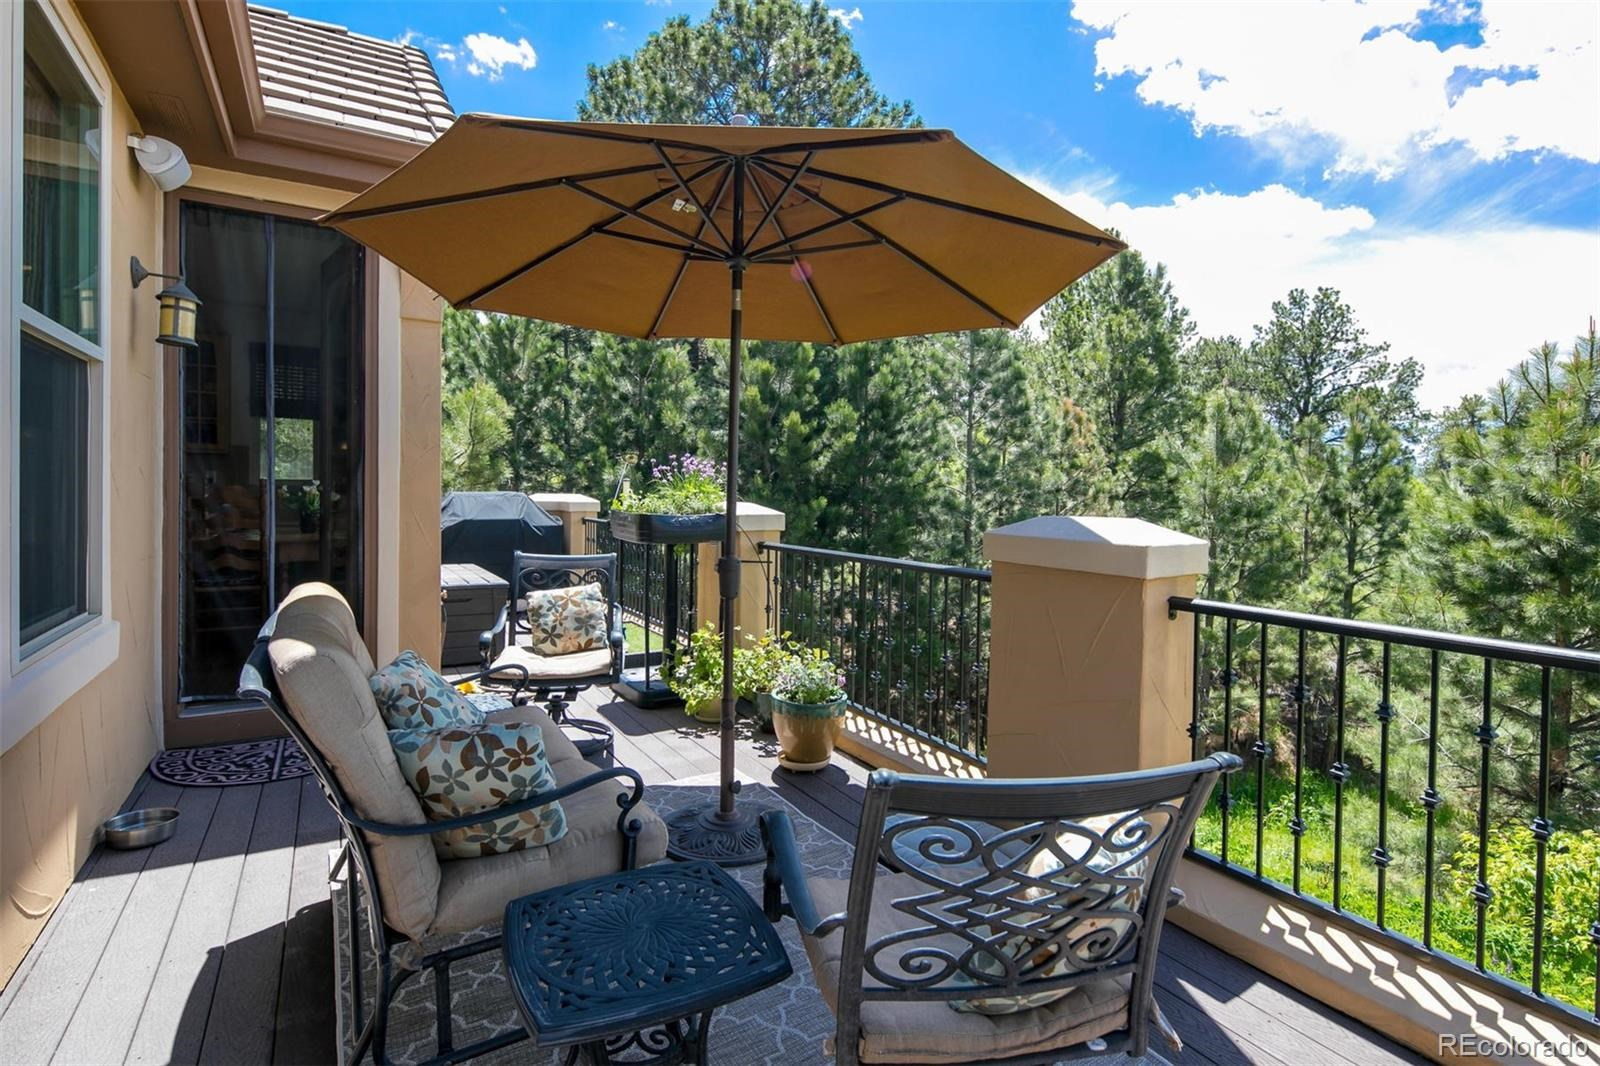 MLS# 5435747 - 27 - 5085 Hidden Pond Place, Castle Rock, CO 80108